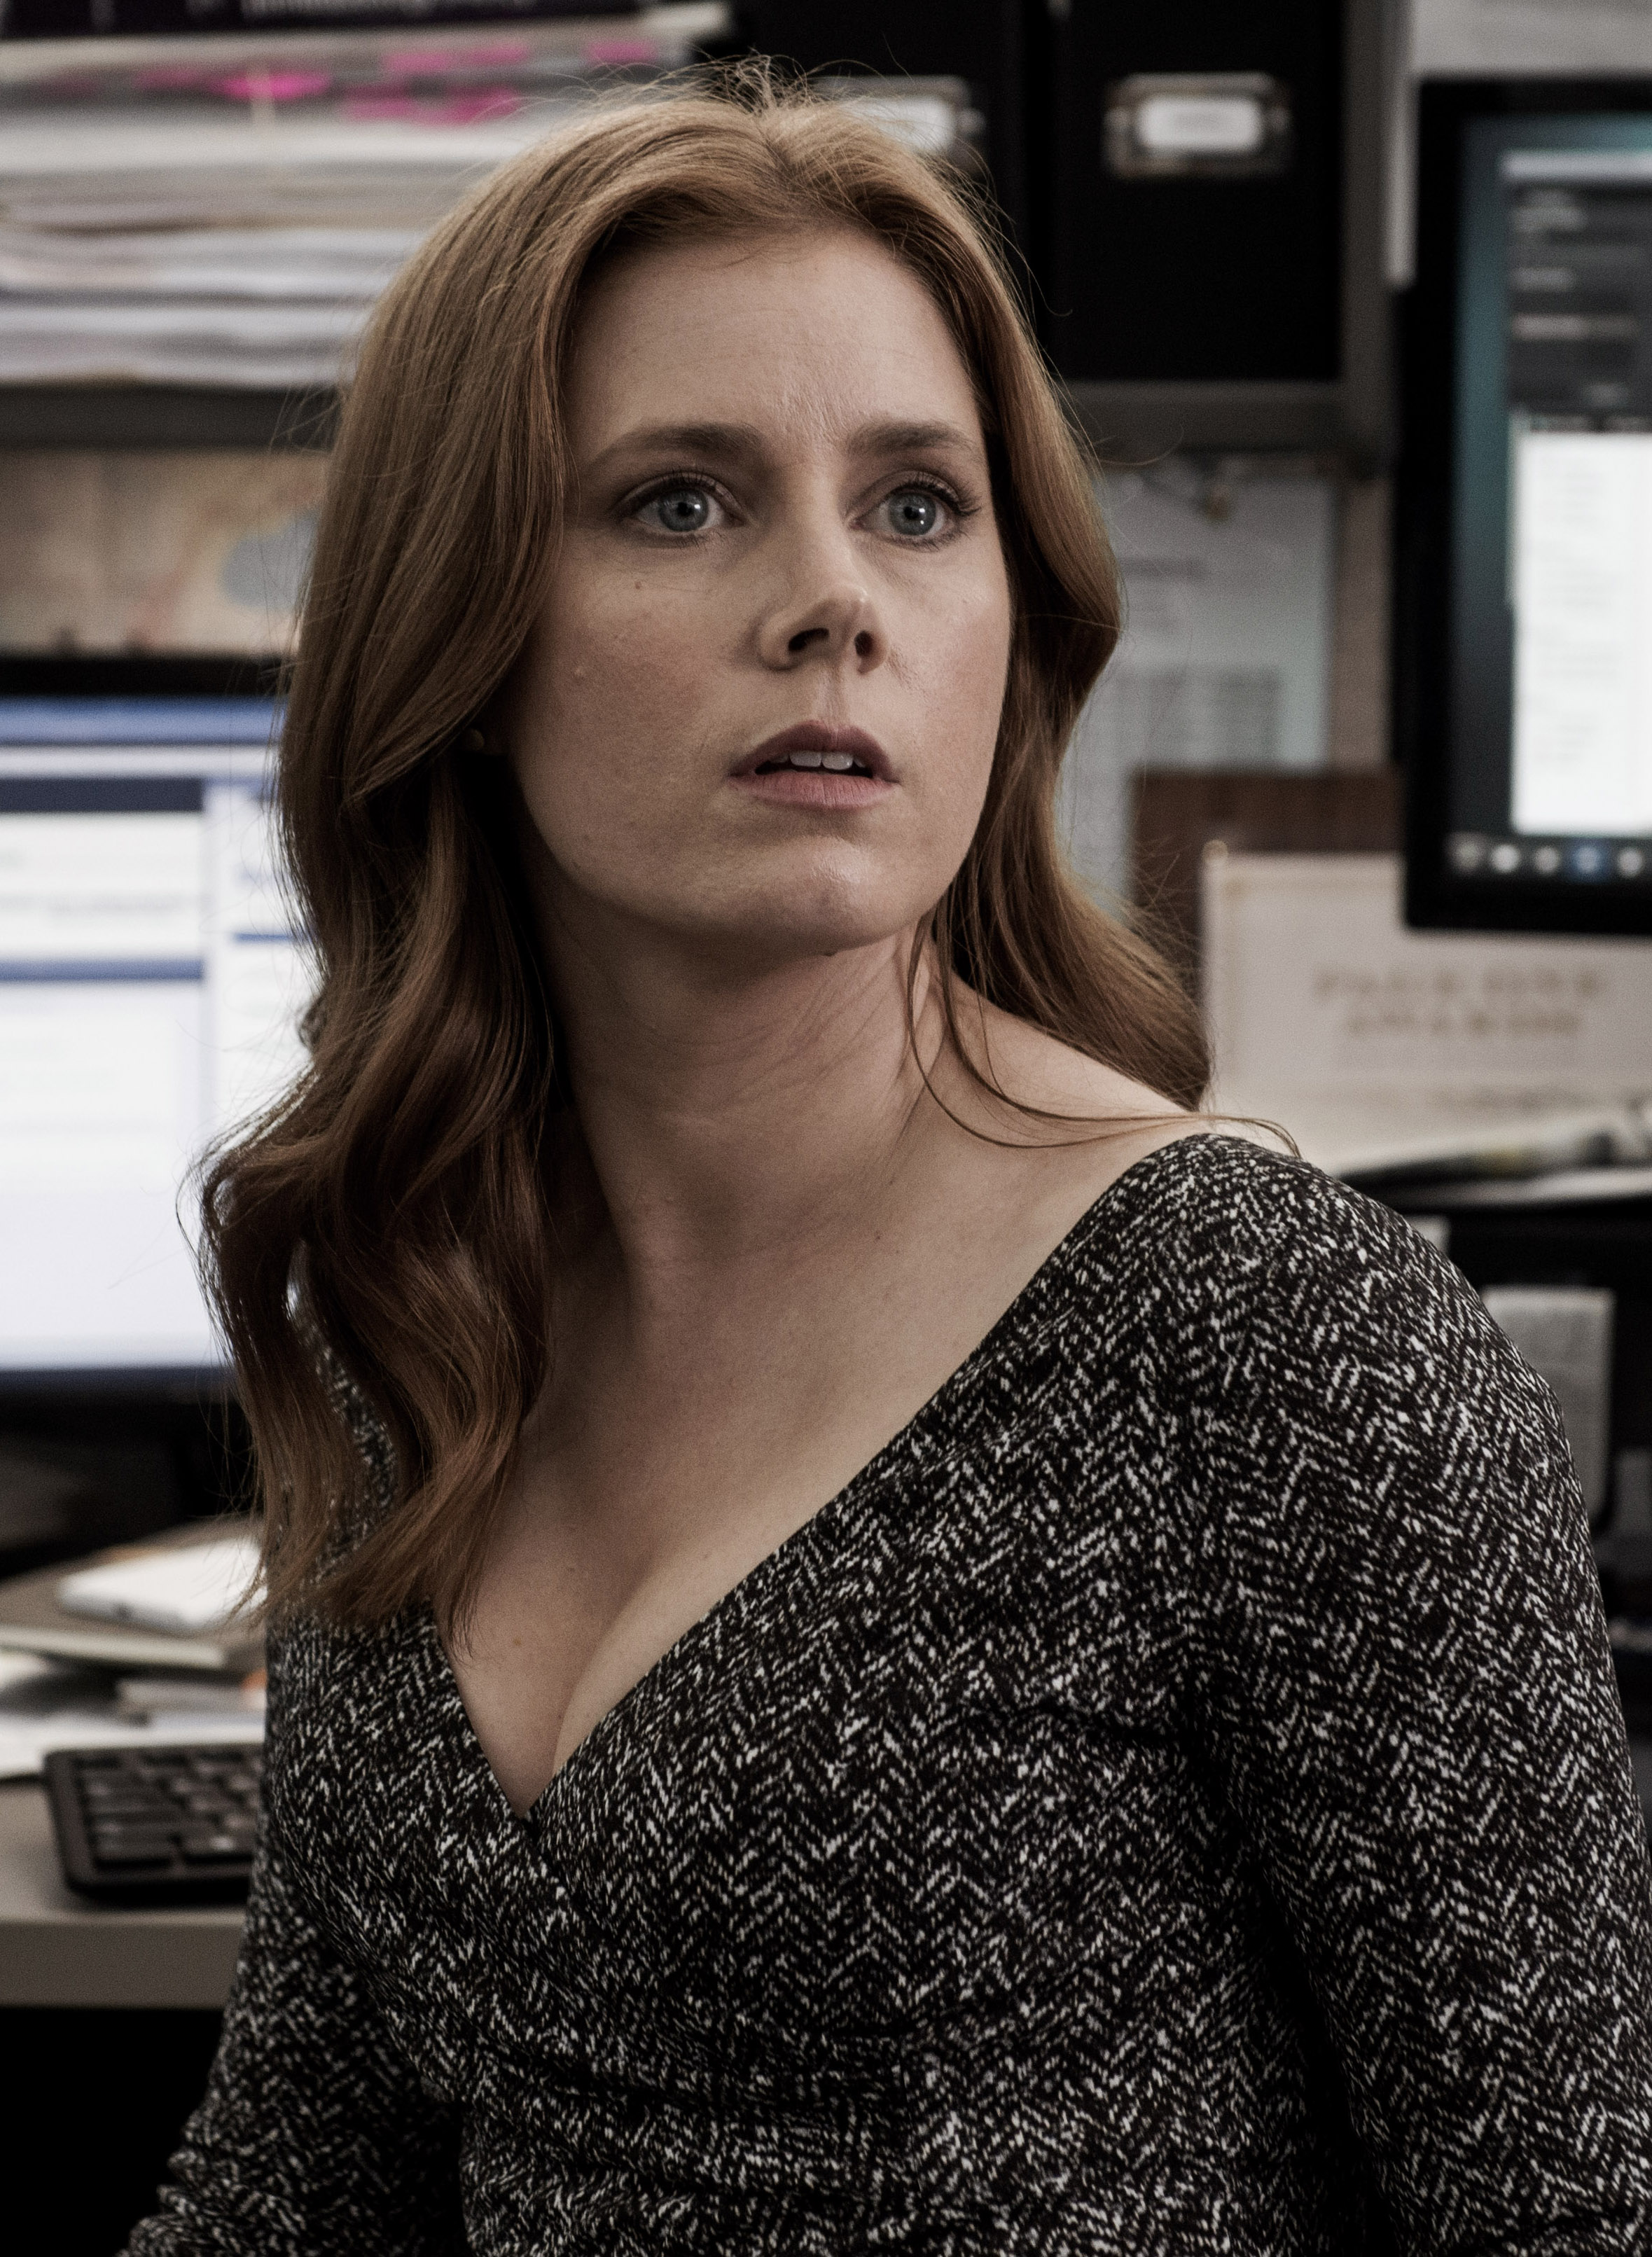 Amy Adams Wikipedia Español lois lane (amy adams) | batman wiki | fandom